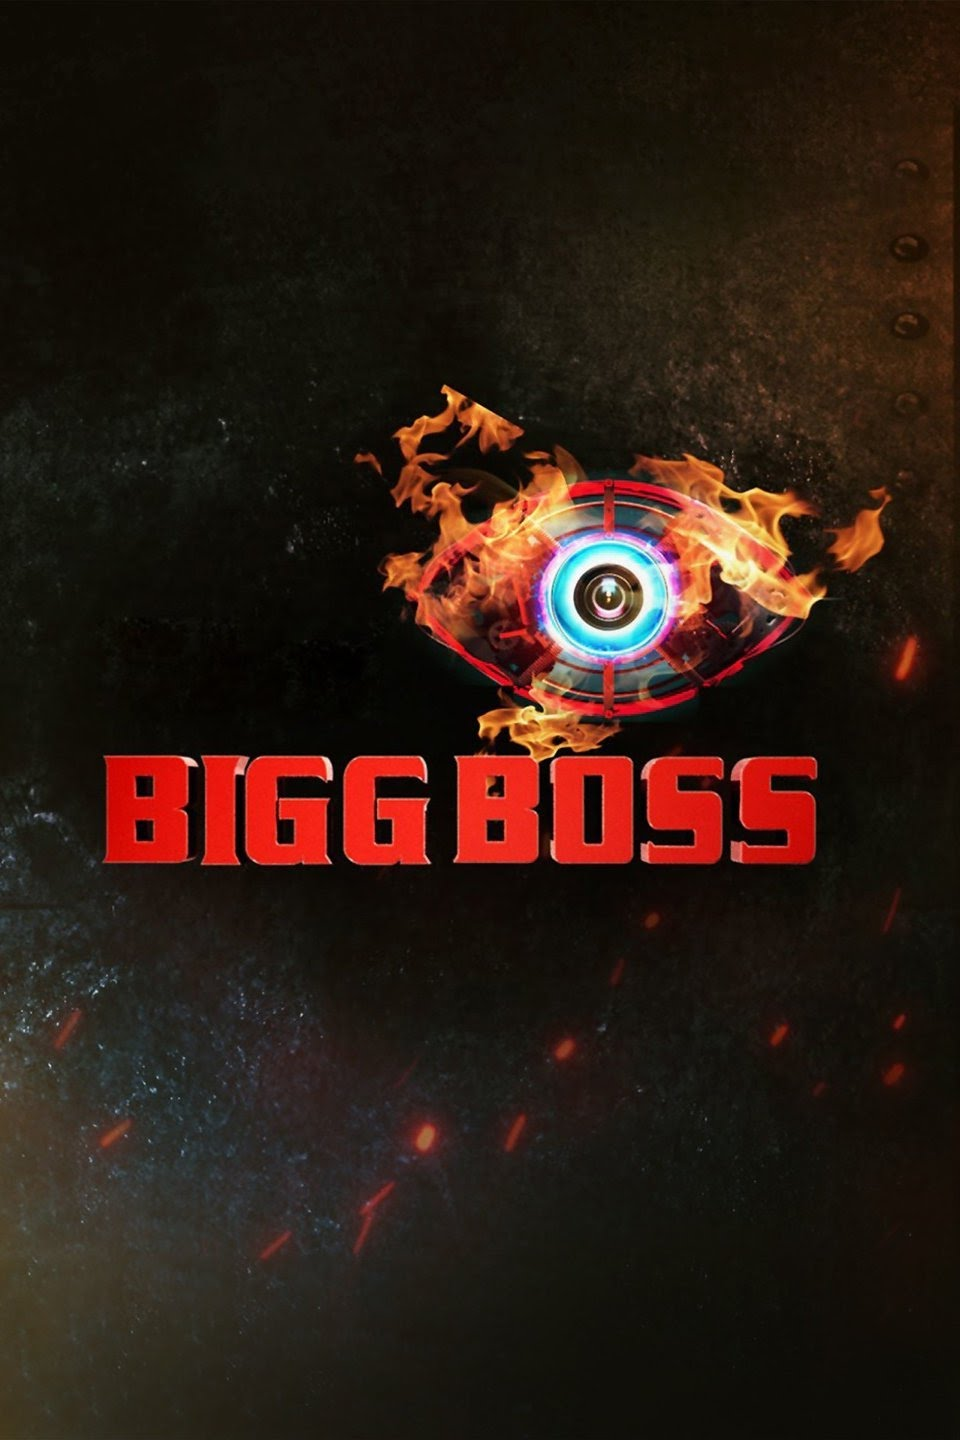 Bigg Boss Season 14 [Ep12 (15th Oct) added] 1080p Voot WEB-DL Untouched AAC 2.0 | G-Drive